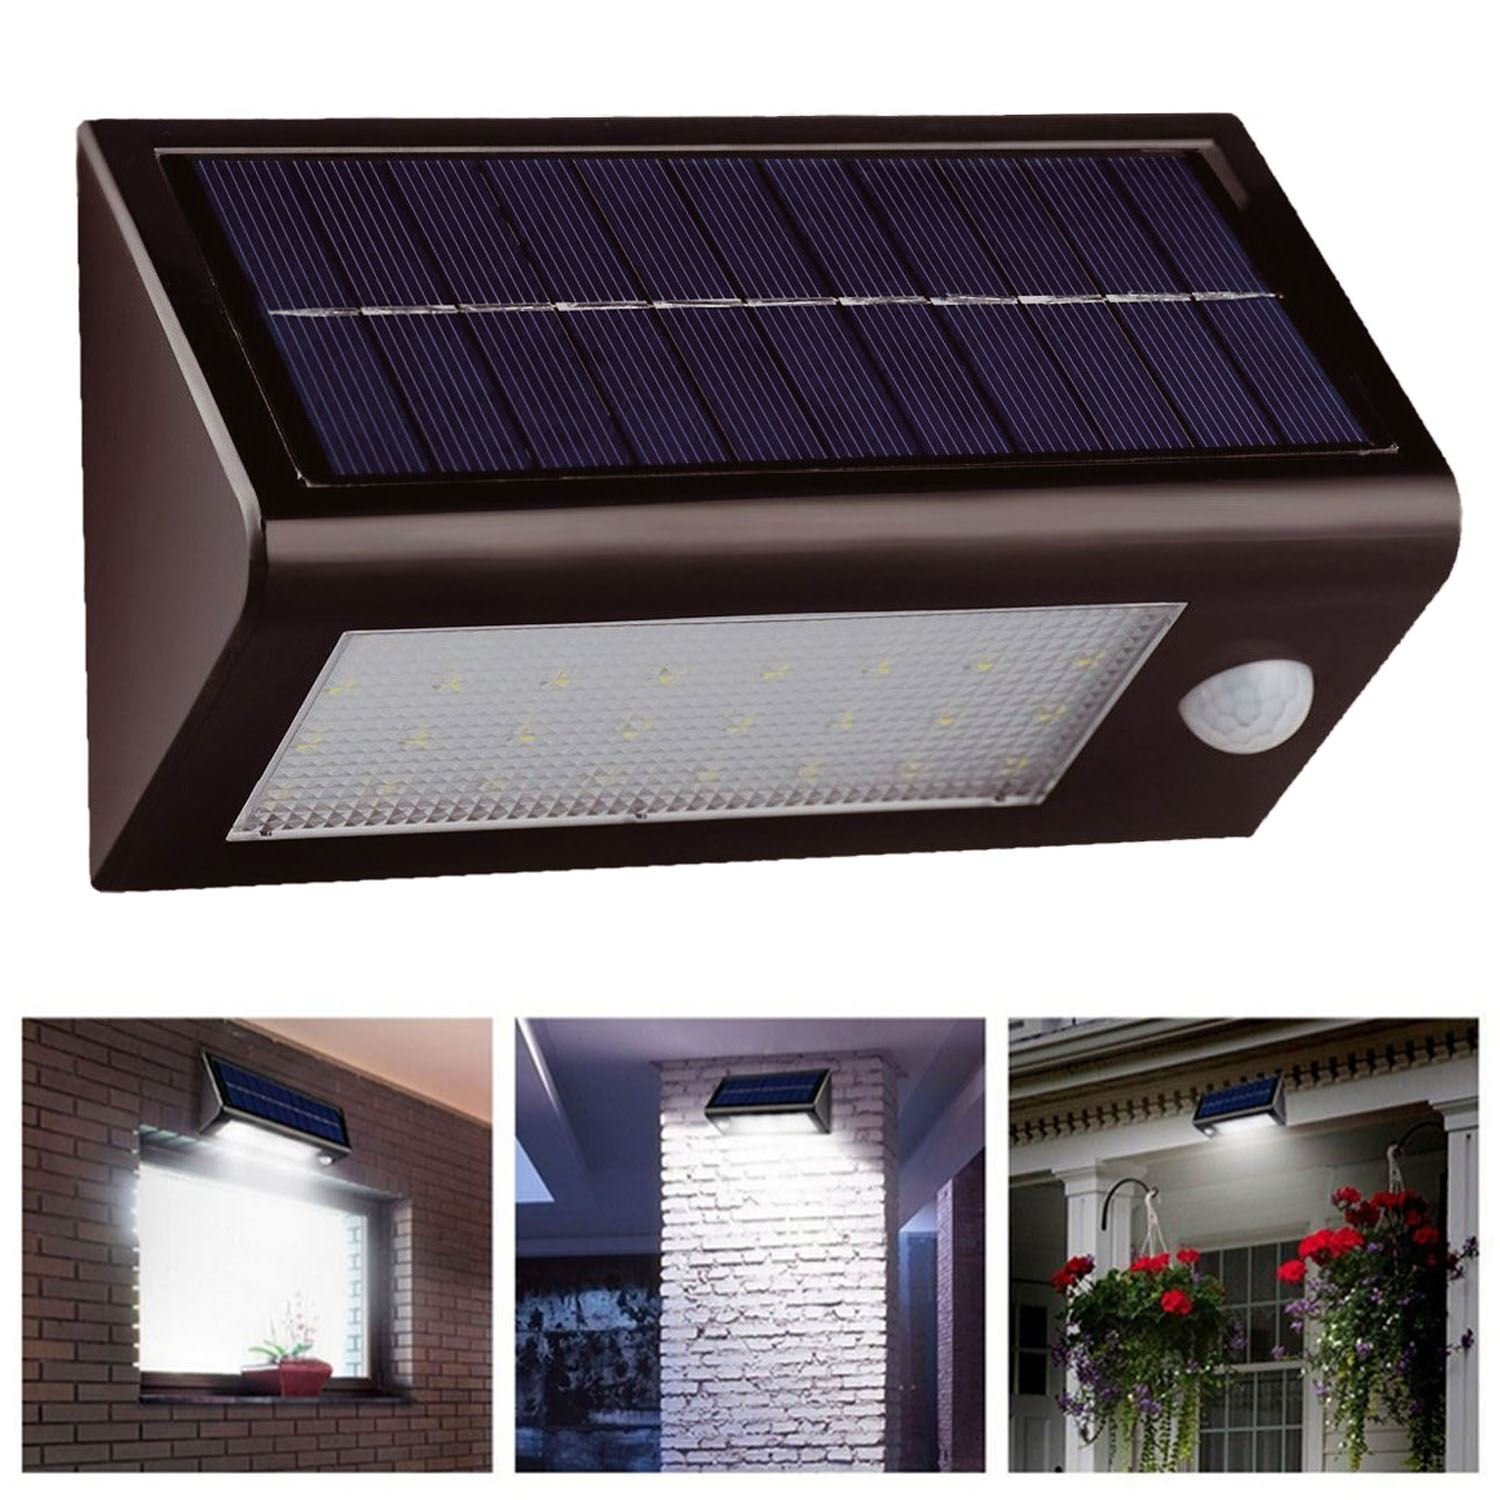 motion security uncle wall wiener led new light sensor garden product mswall s solar lighting